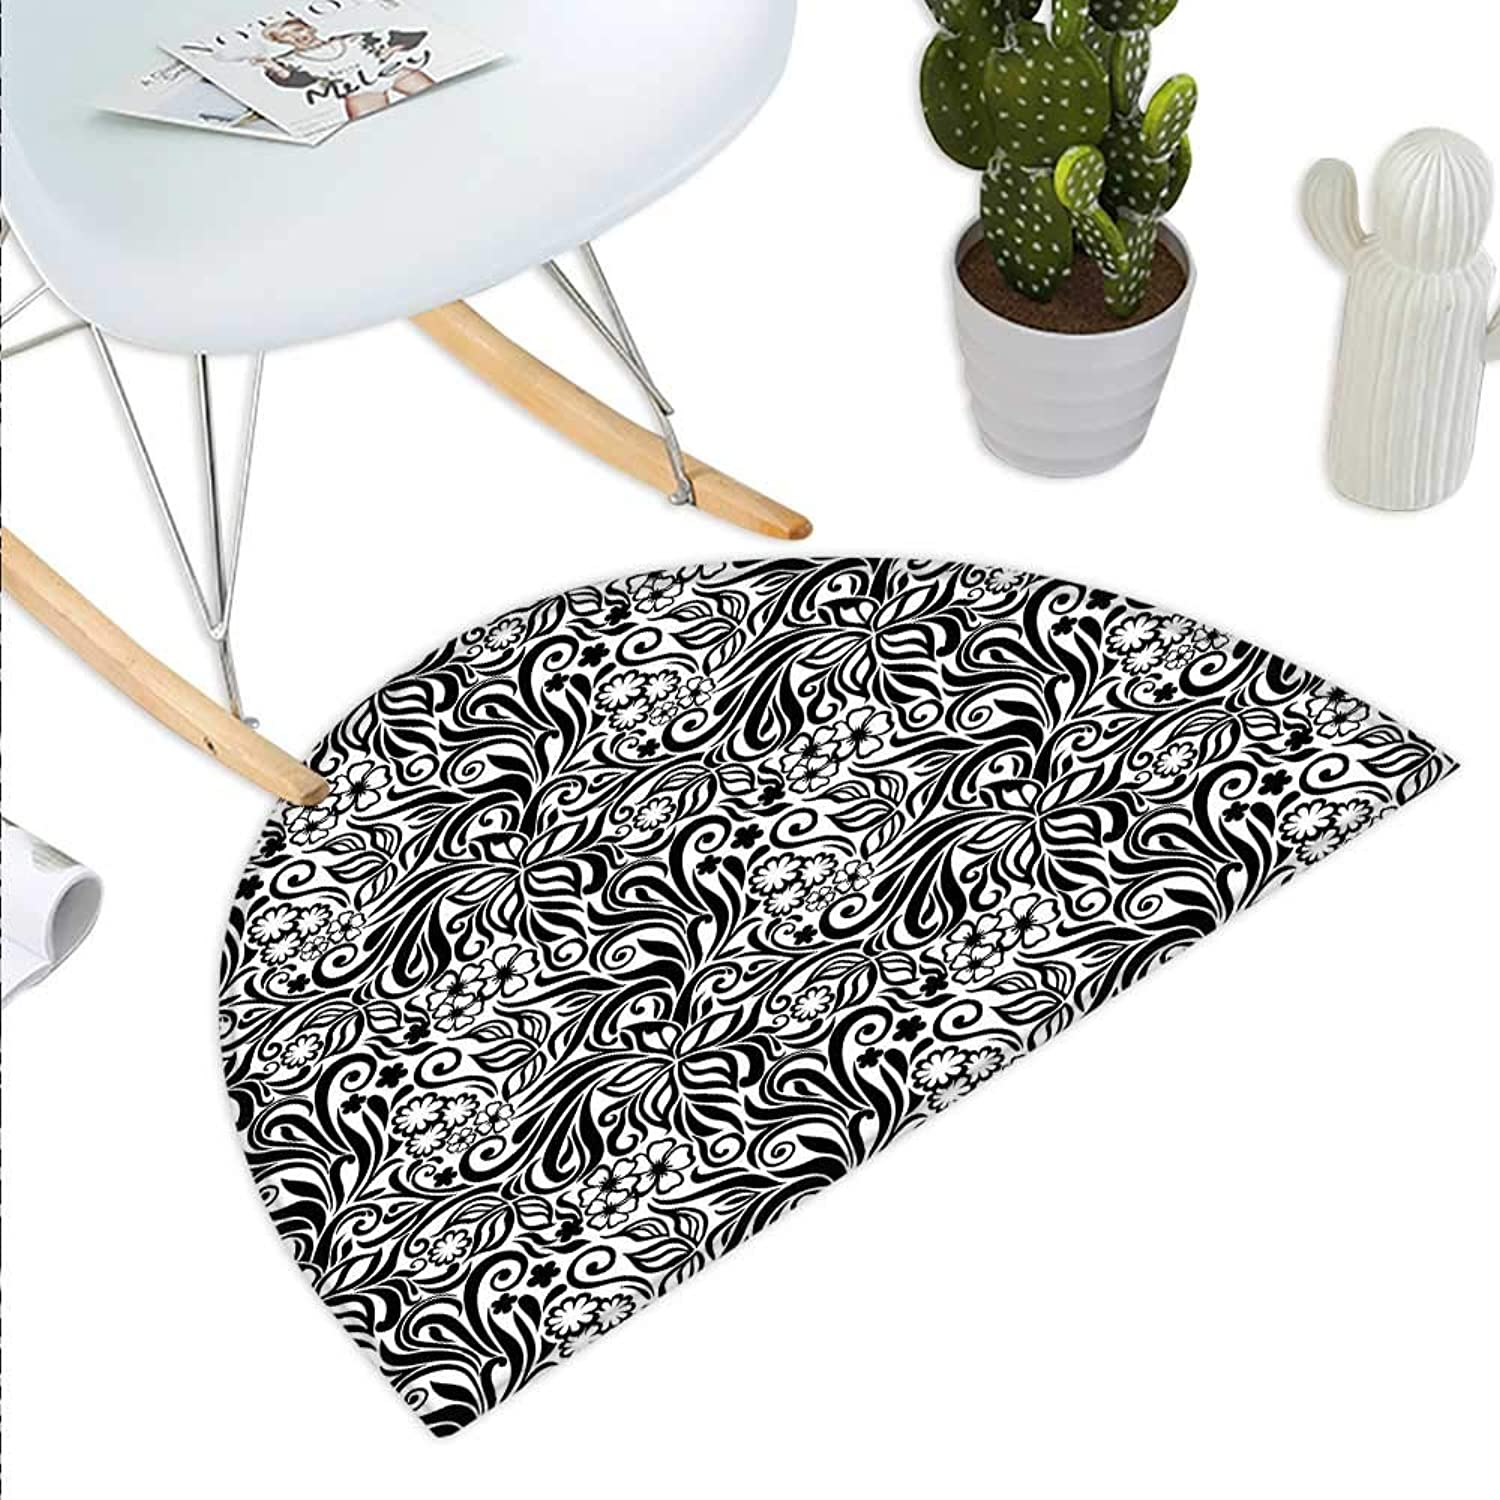 Black and White Semicircle Doormat Western Scroll Pattern Design with Classical Cheery Flourishing Blossoms Halfmoon doormats H 43.3  xD 64.9  Black White